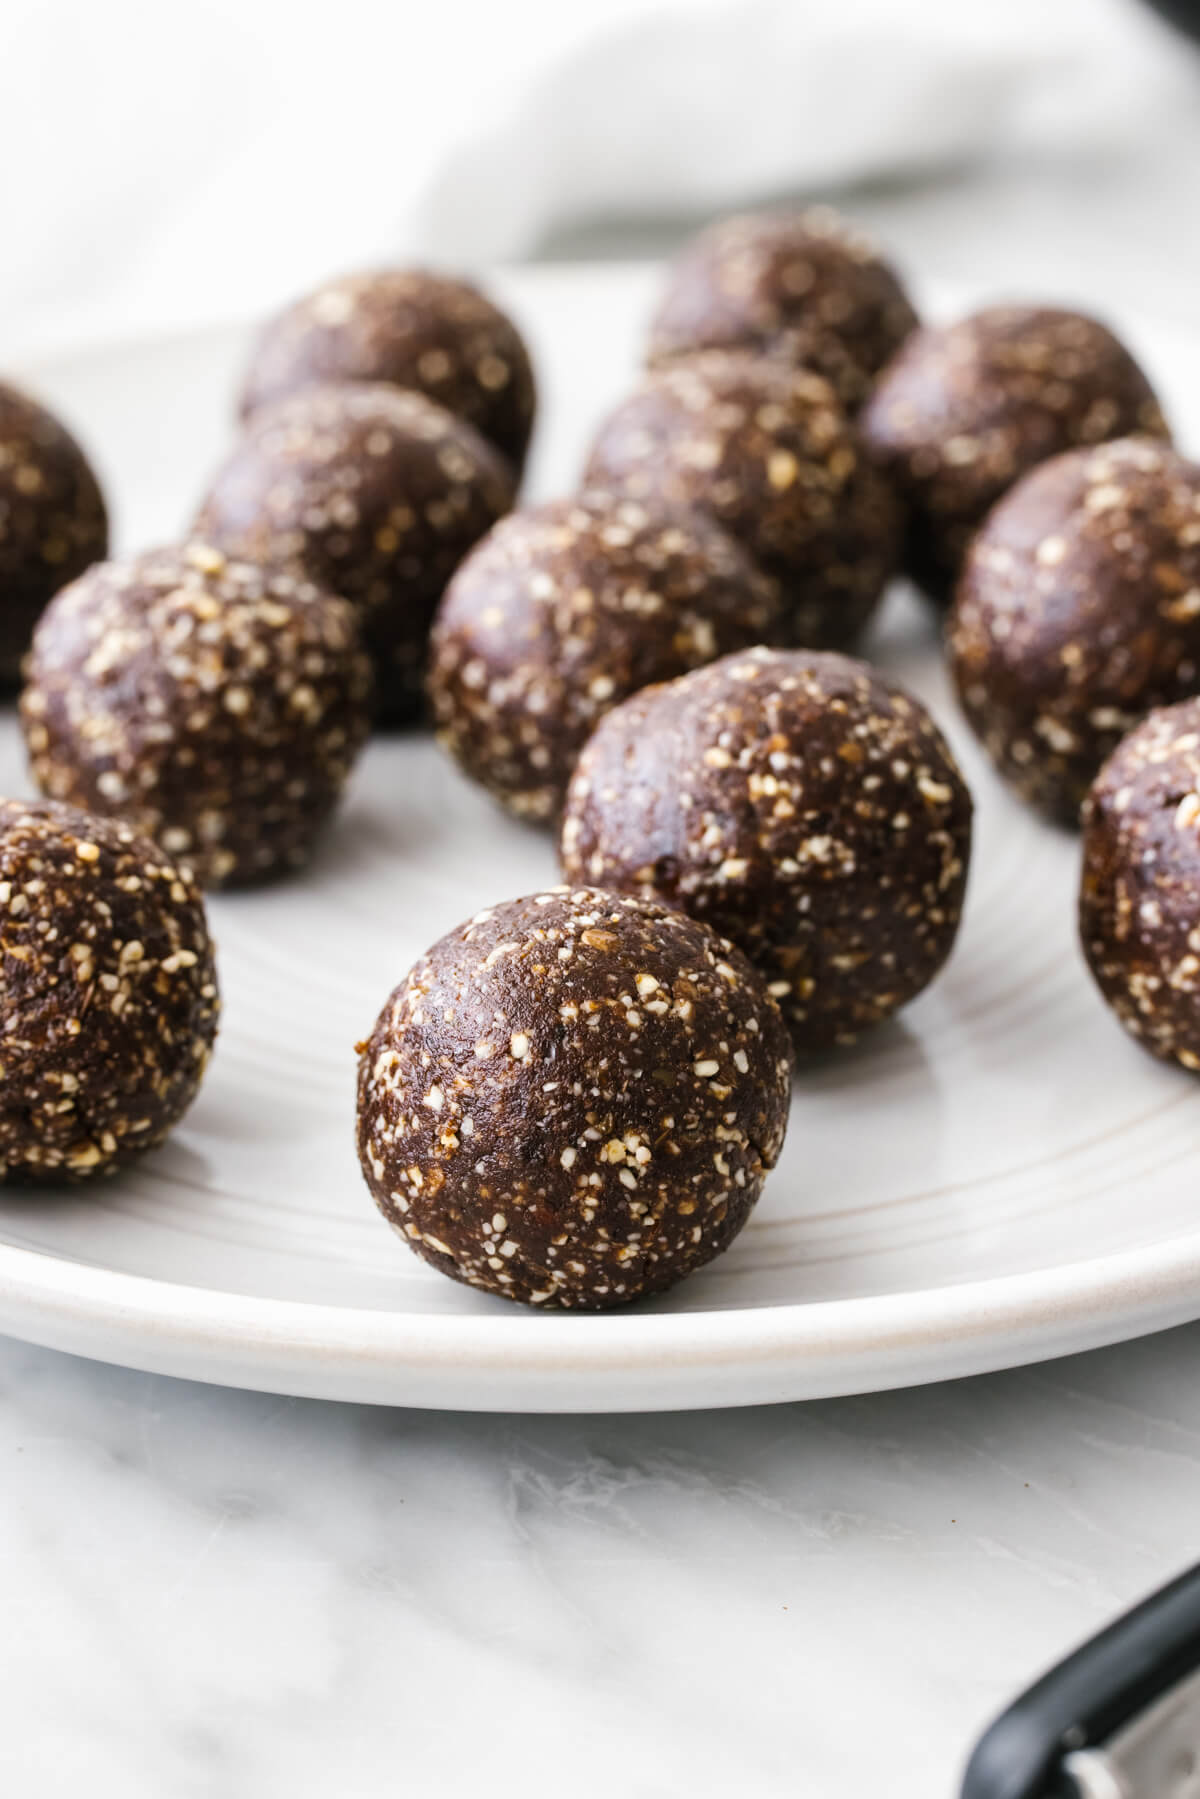 A plate of mint chocolate energy balls